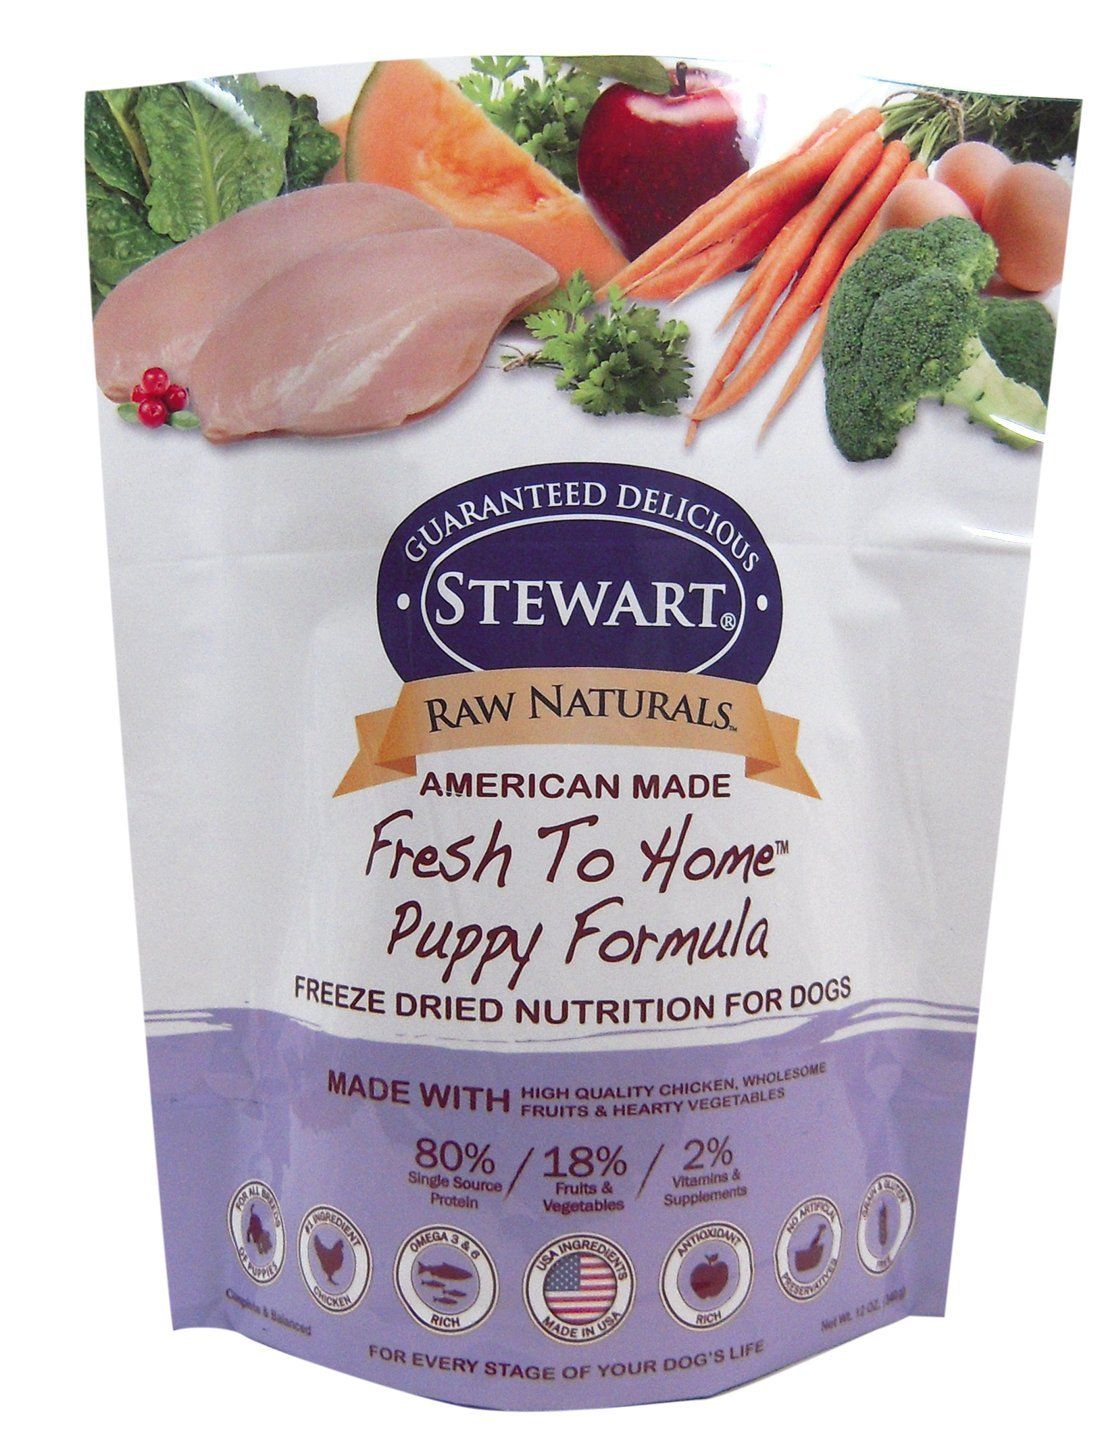 Stewart Raw Naturals Chicken Fresh To Home Puppy Formula Freeze Dried Food 1 Pack Wow I Love This Ch Puppy Food Freeze Dried Dog Food Freeze Drying Food